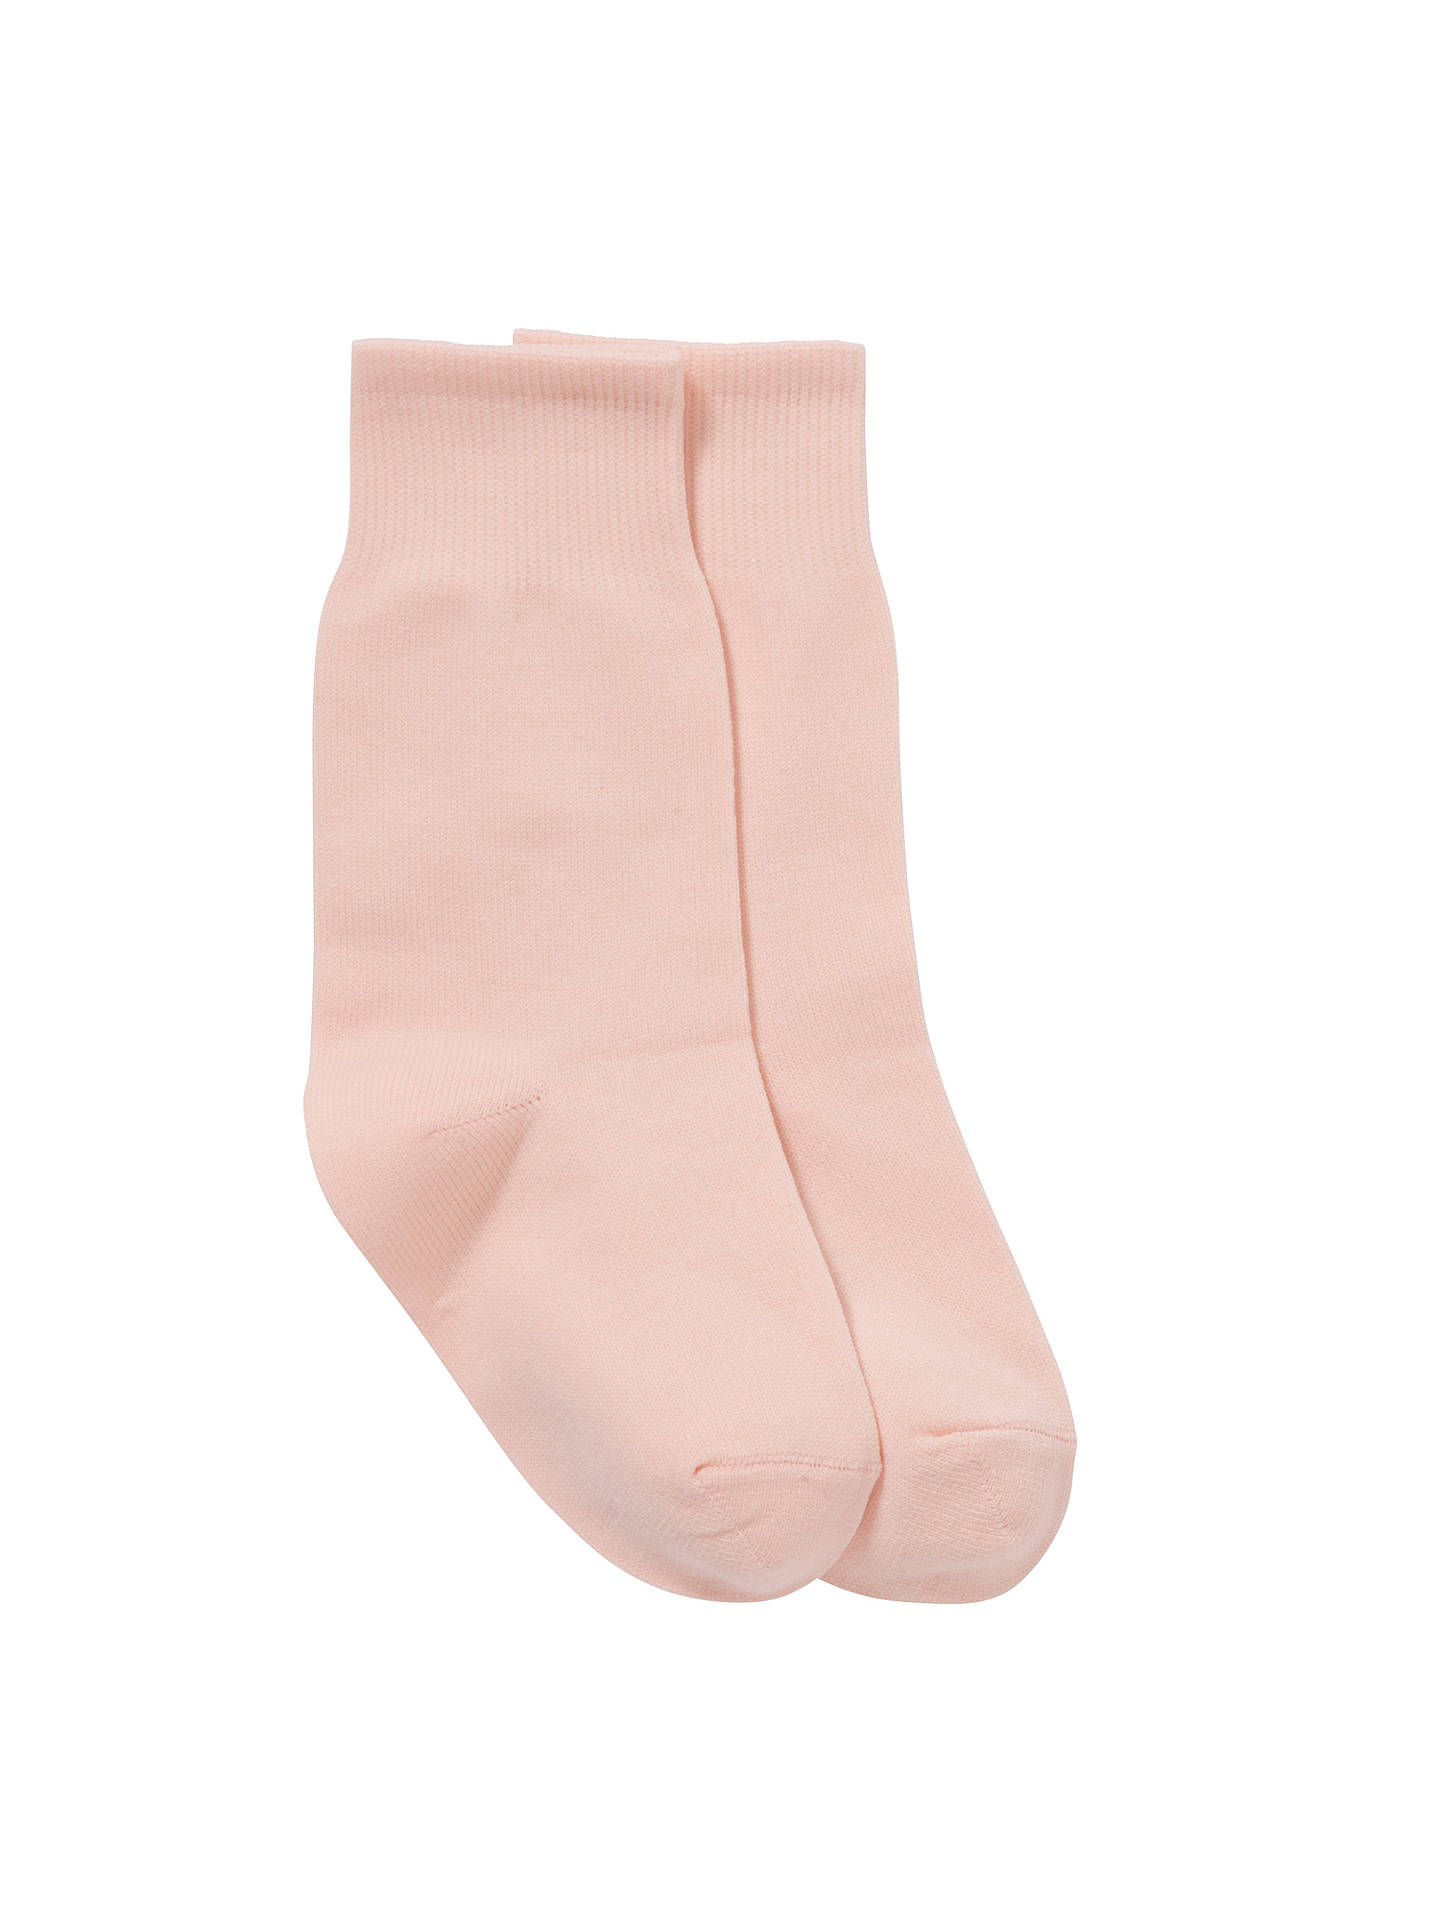 Royal Academy Of Dance Ballet Socks, Pink